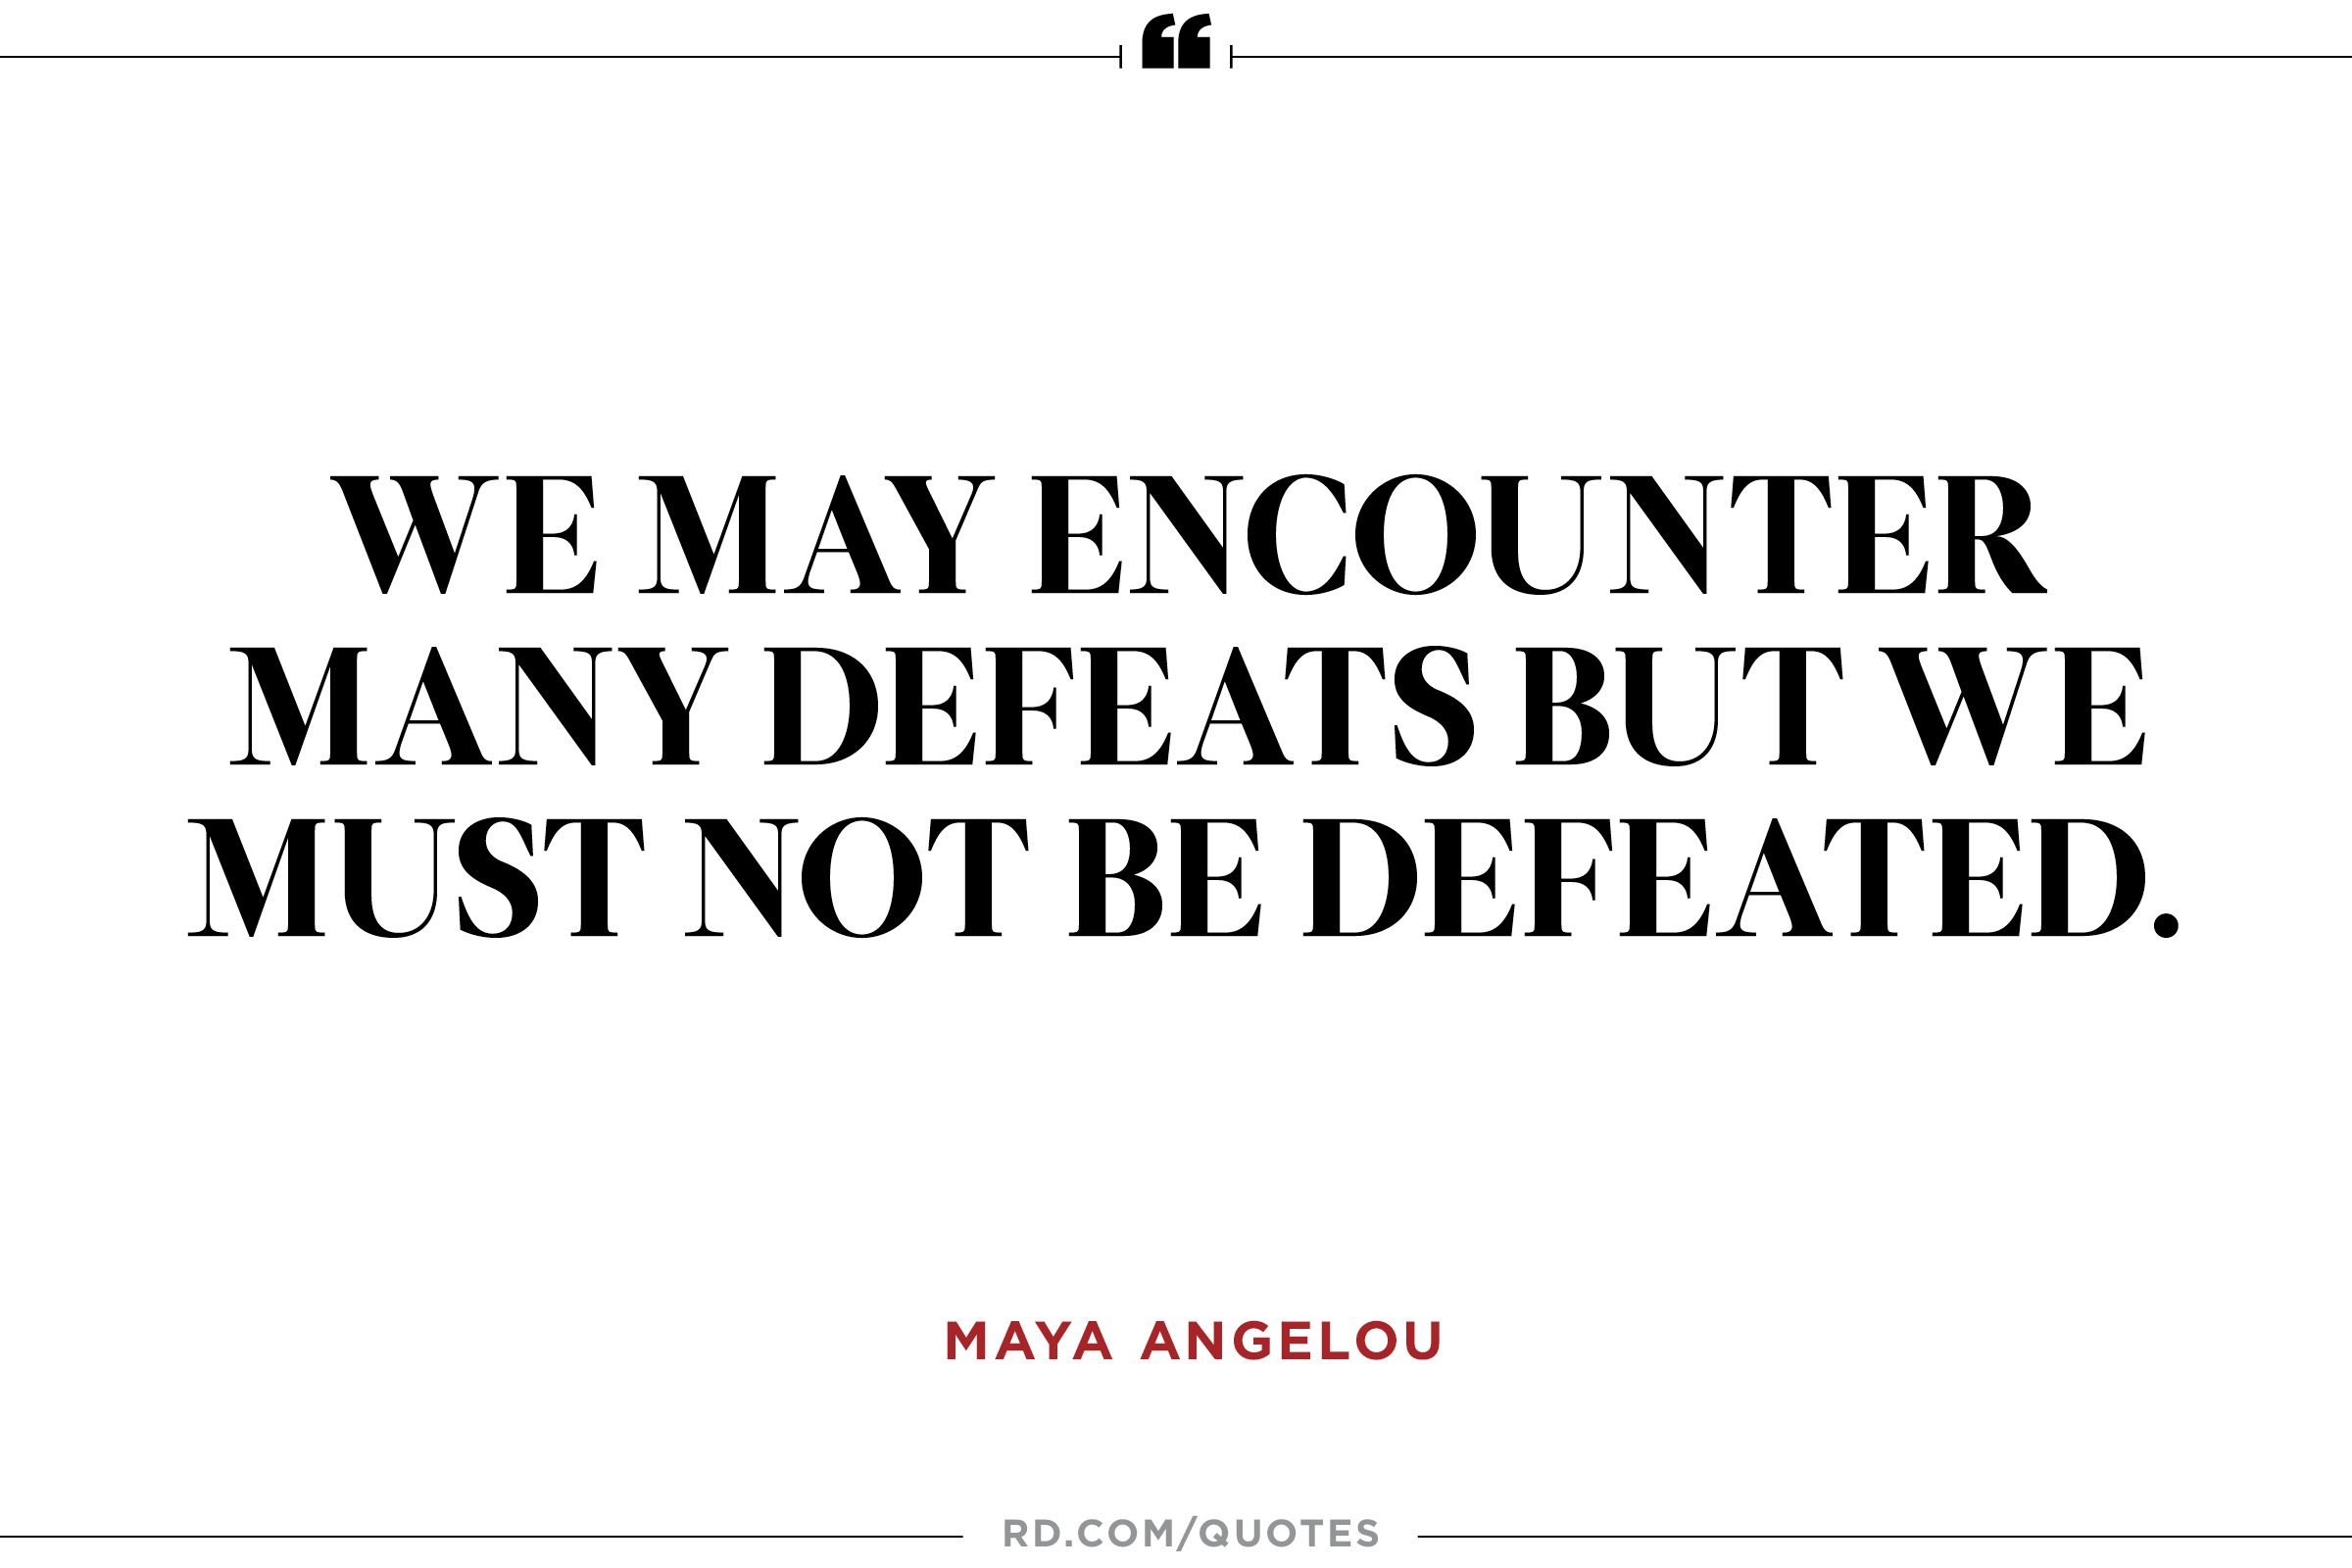 Maya Angelou Quotes And Sayings: Maya Angelou At Her Best: 8 Quotable Quotes